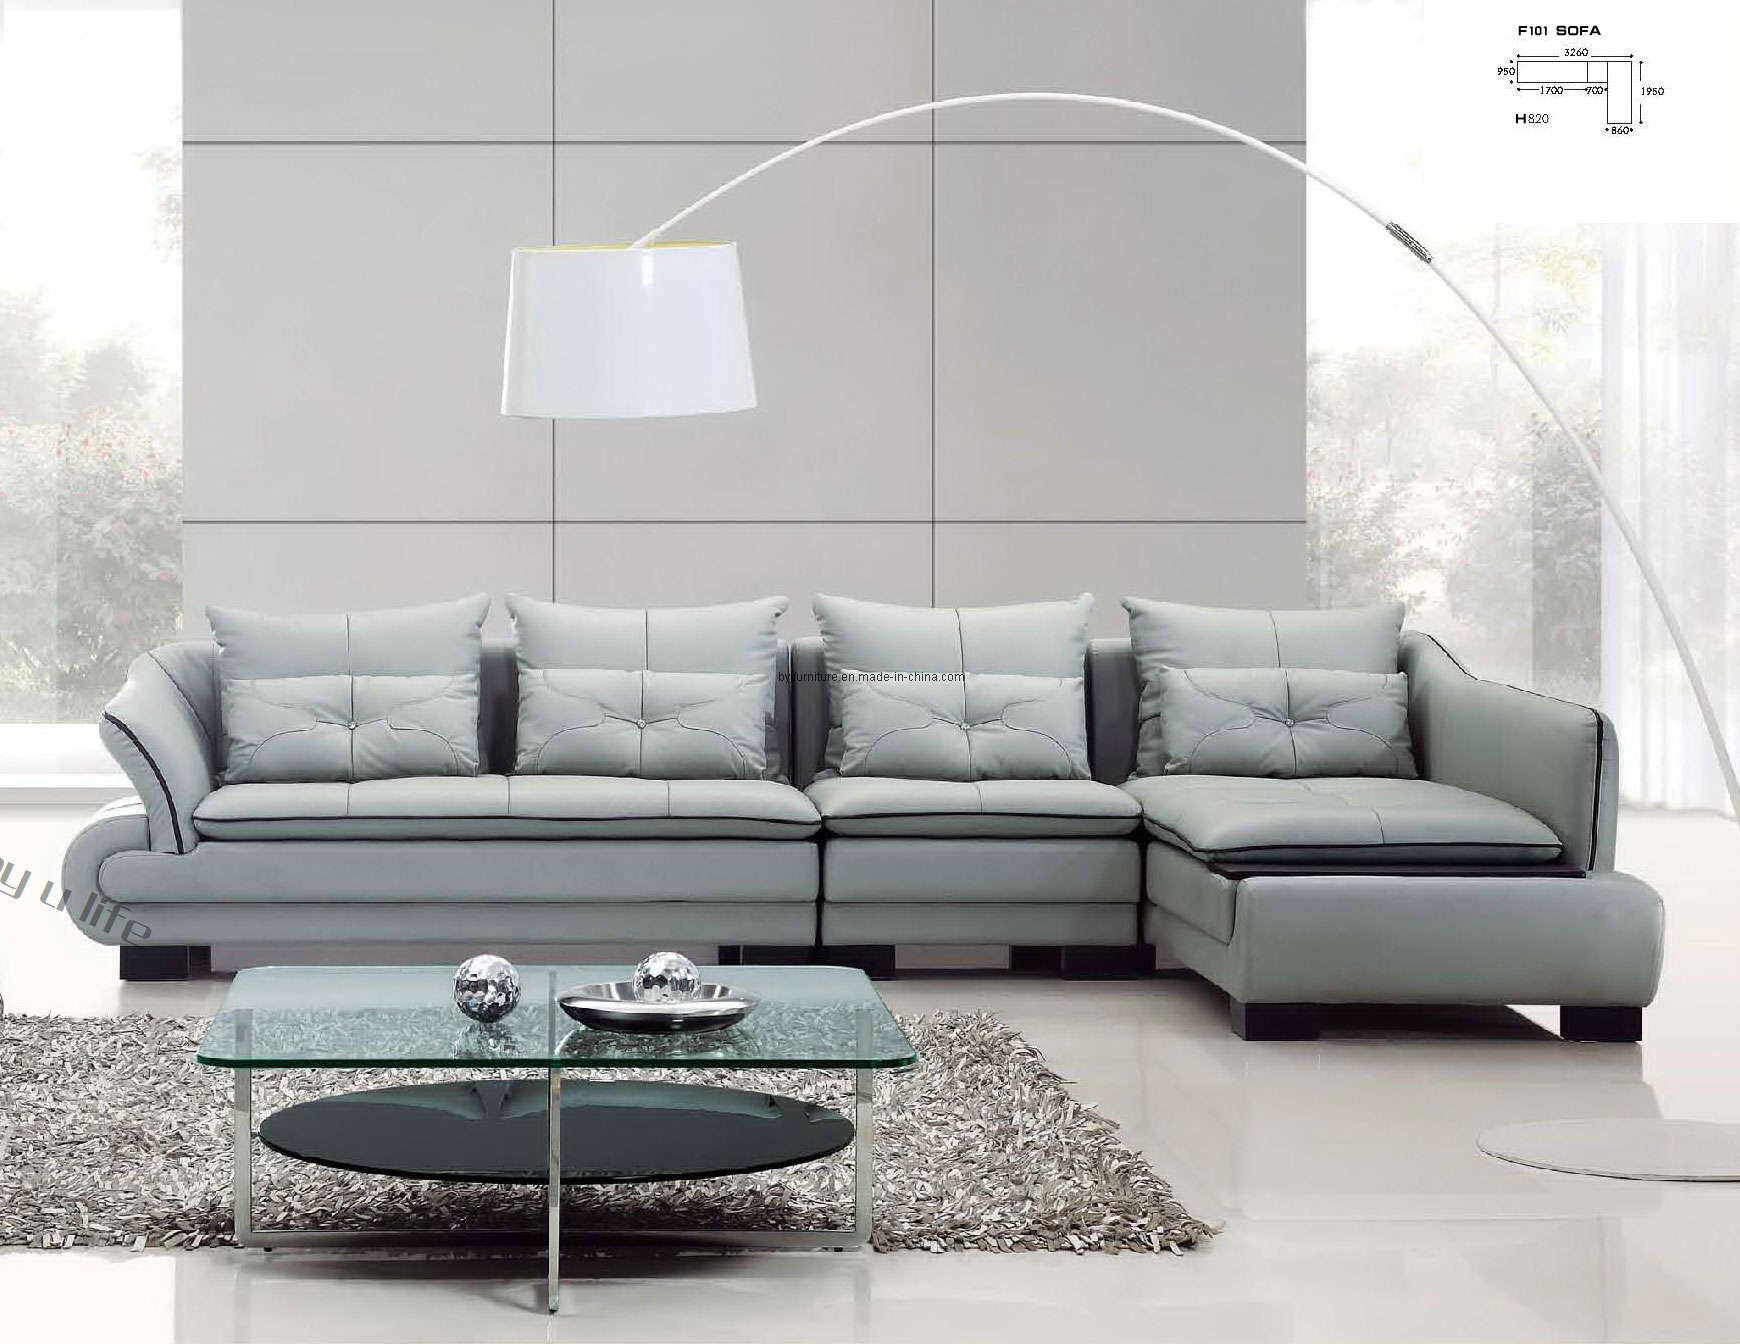 designer sofa furniture raymour and flanigan loveseat fresh idea contemporary leather sets amazing